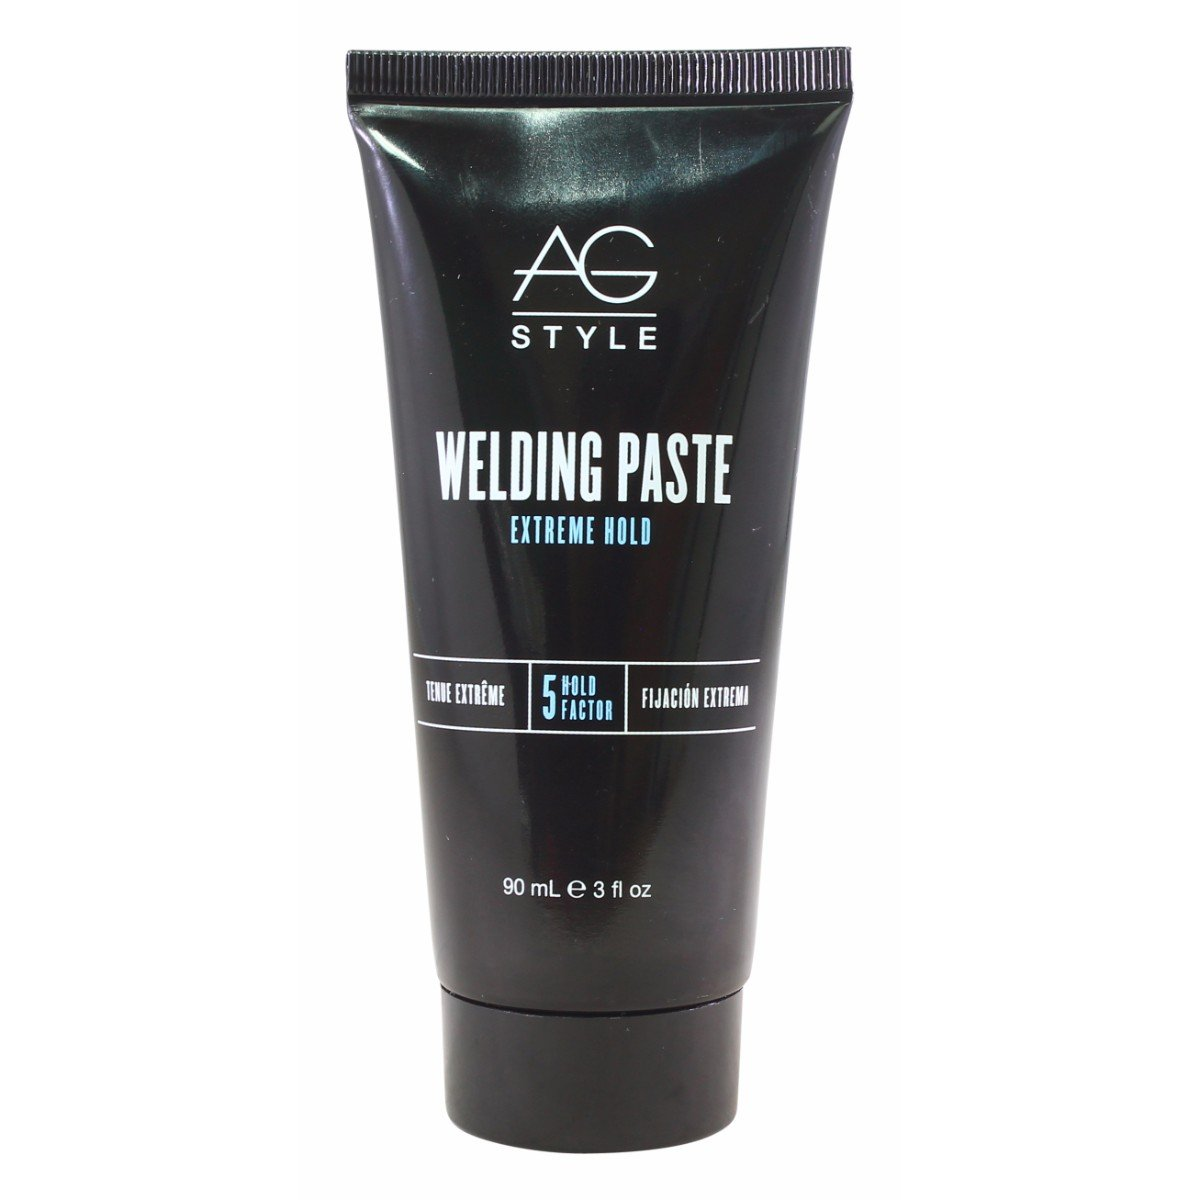 AG Hair Welding Paste Extreme Hold Hair Styling, 3 Fluid Ounce